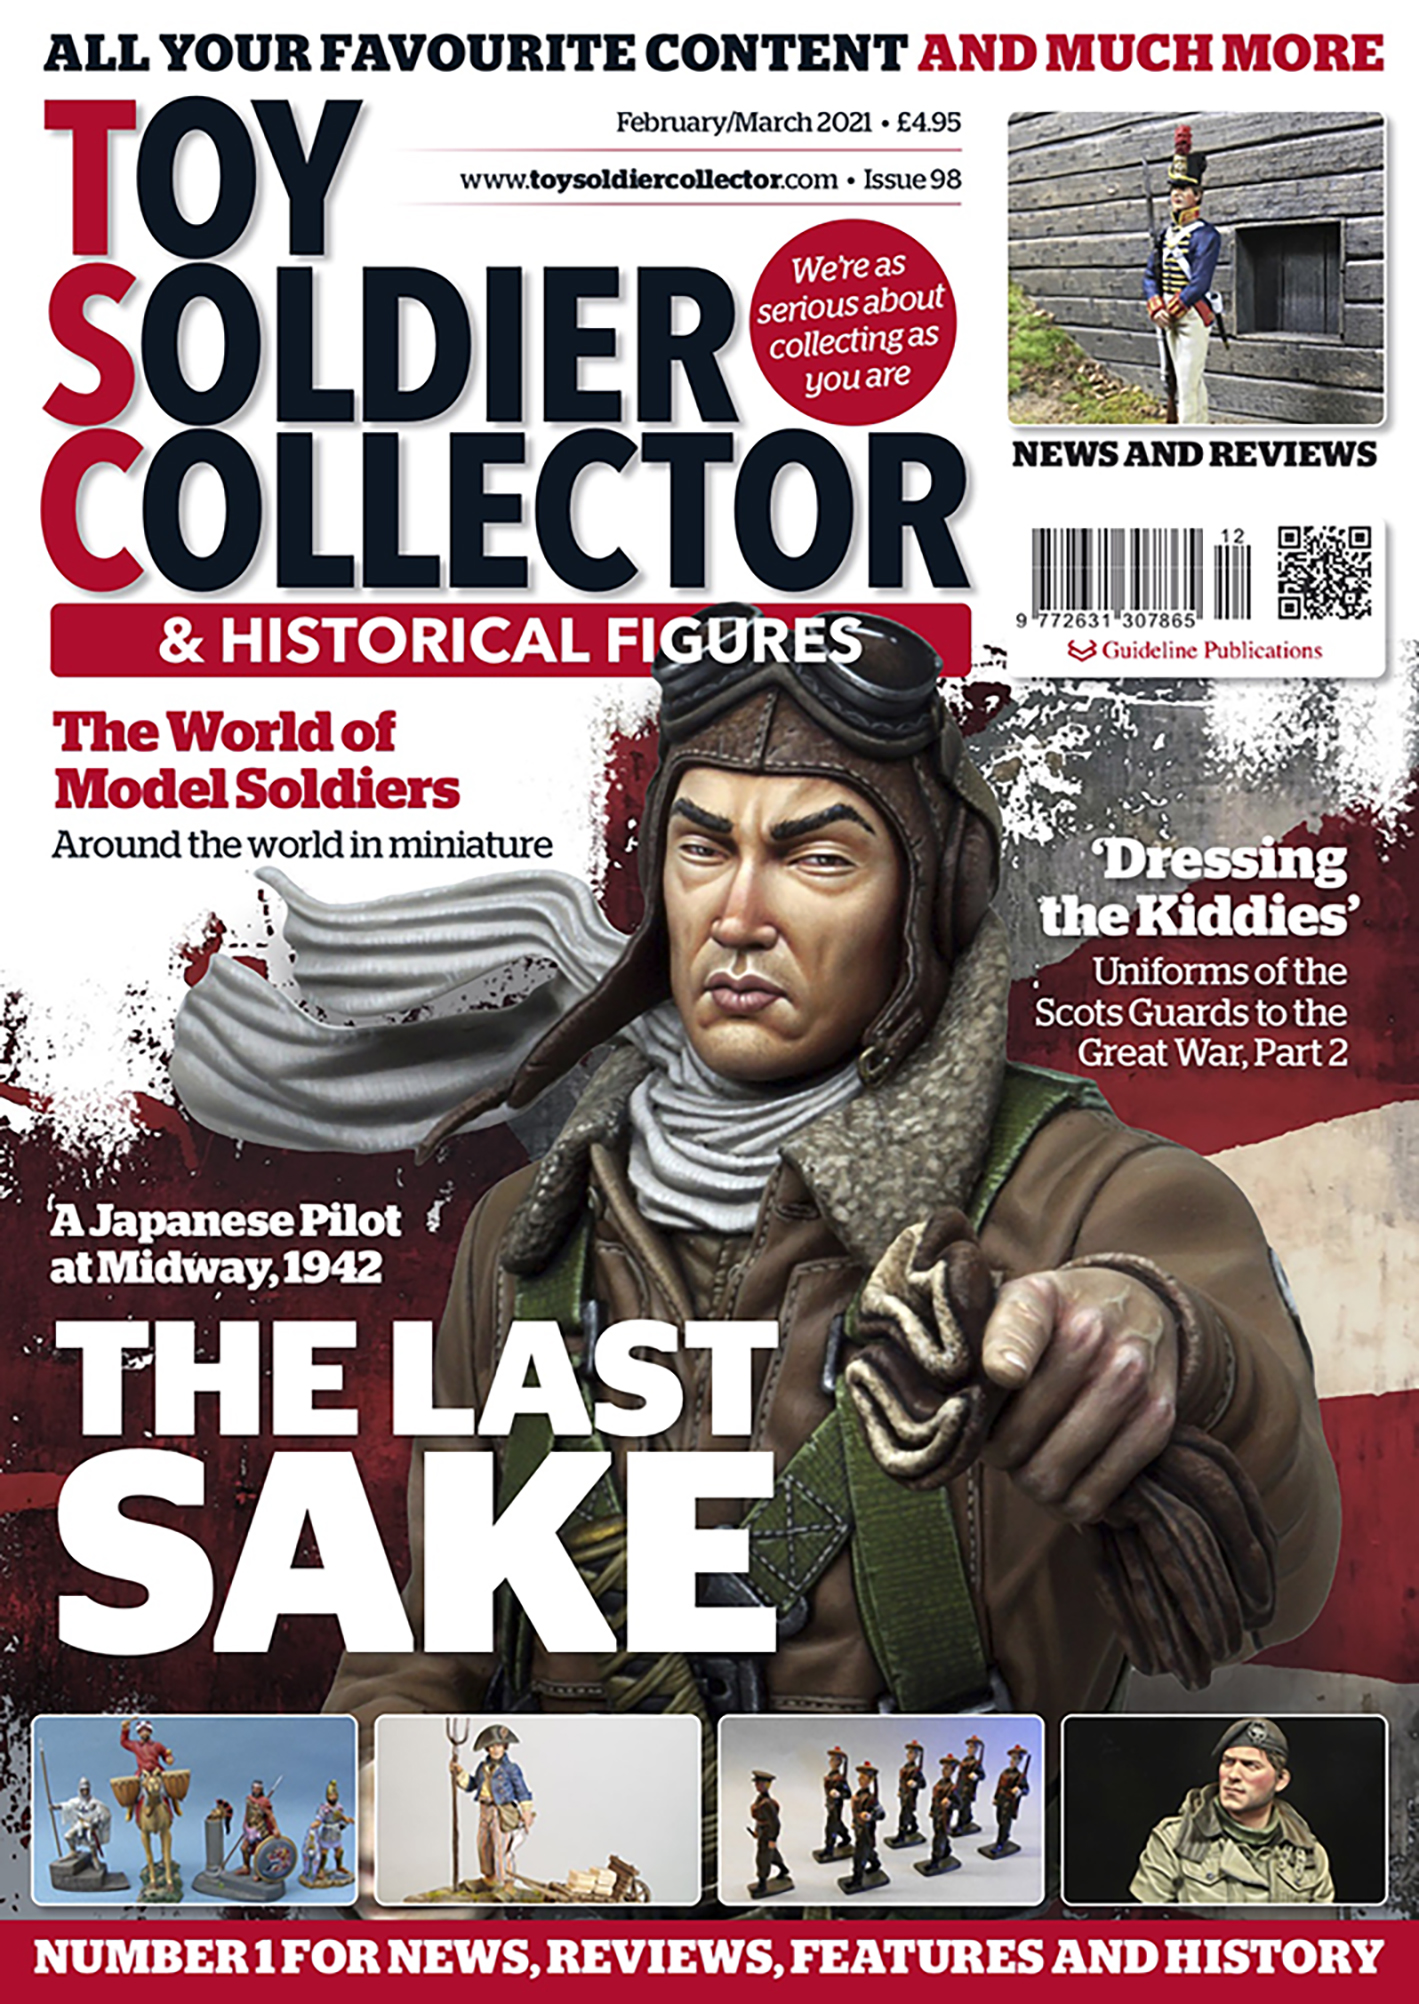 Guideline Publications Toy Soldier Collector #98 Feb/March 21 - Issue 98